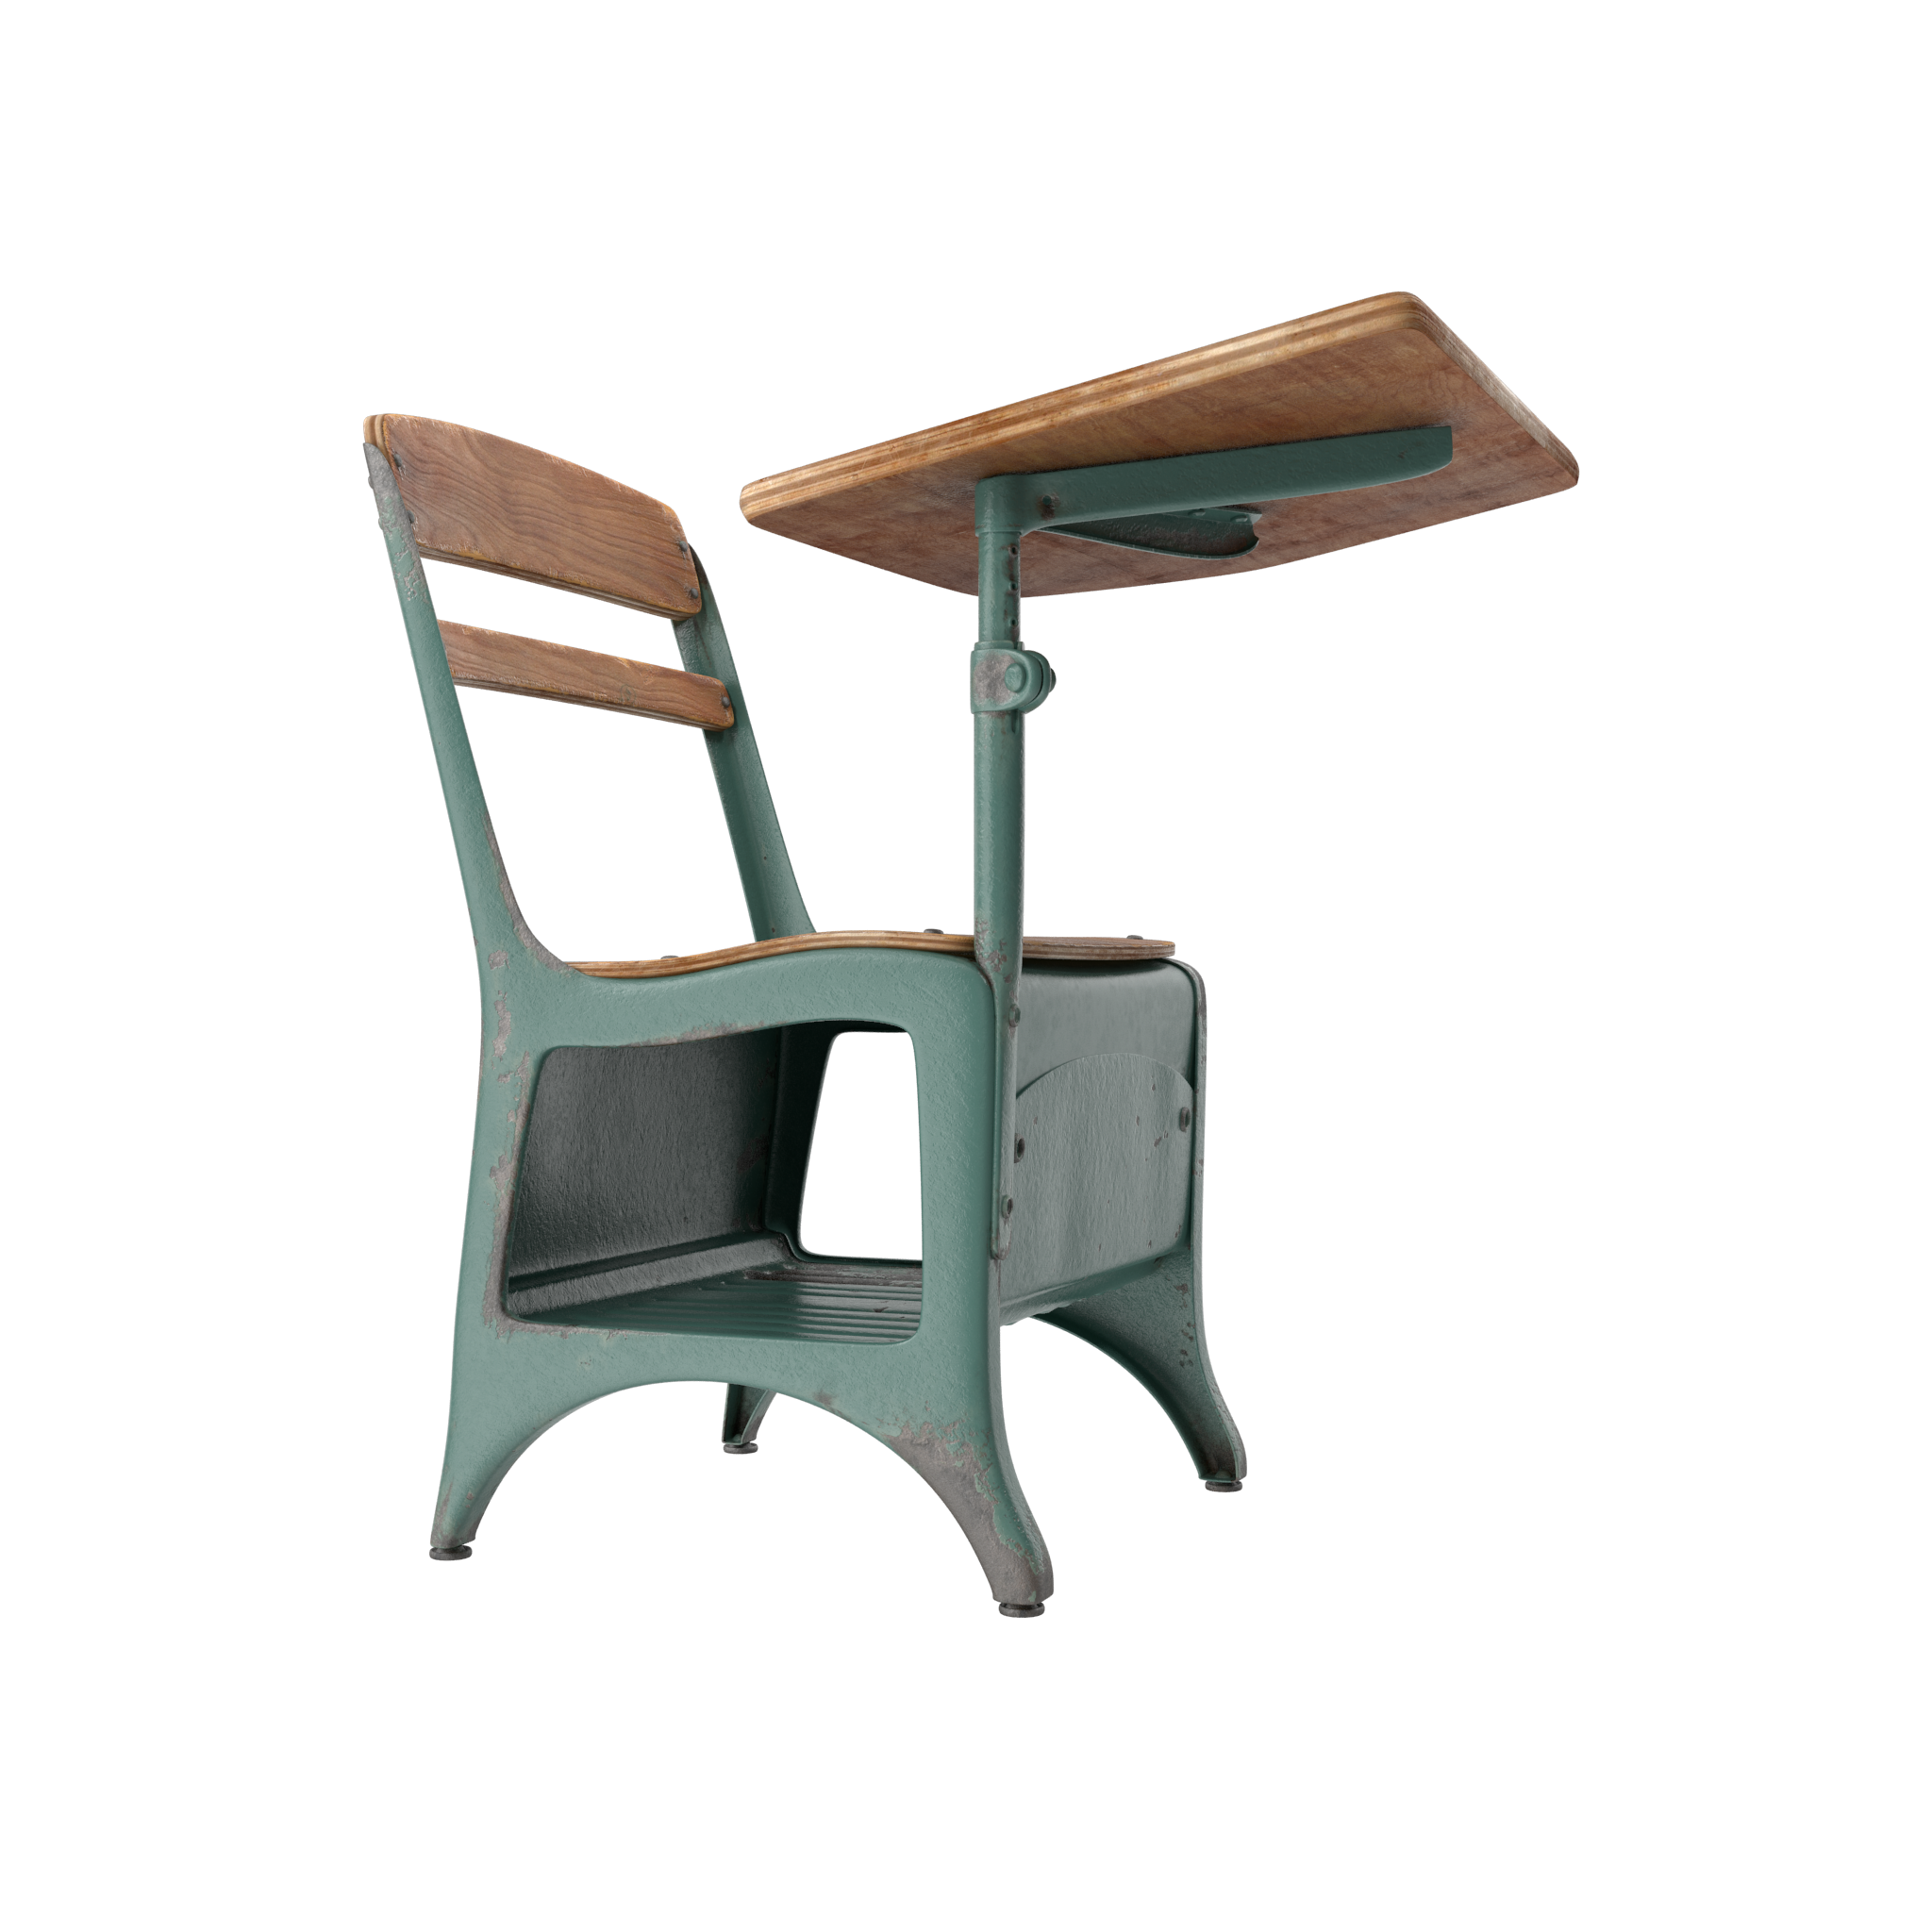 Antique School Desk Png Image Purepng Free Transpa Cc0 Library